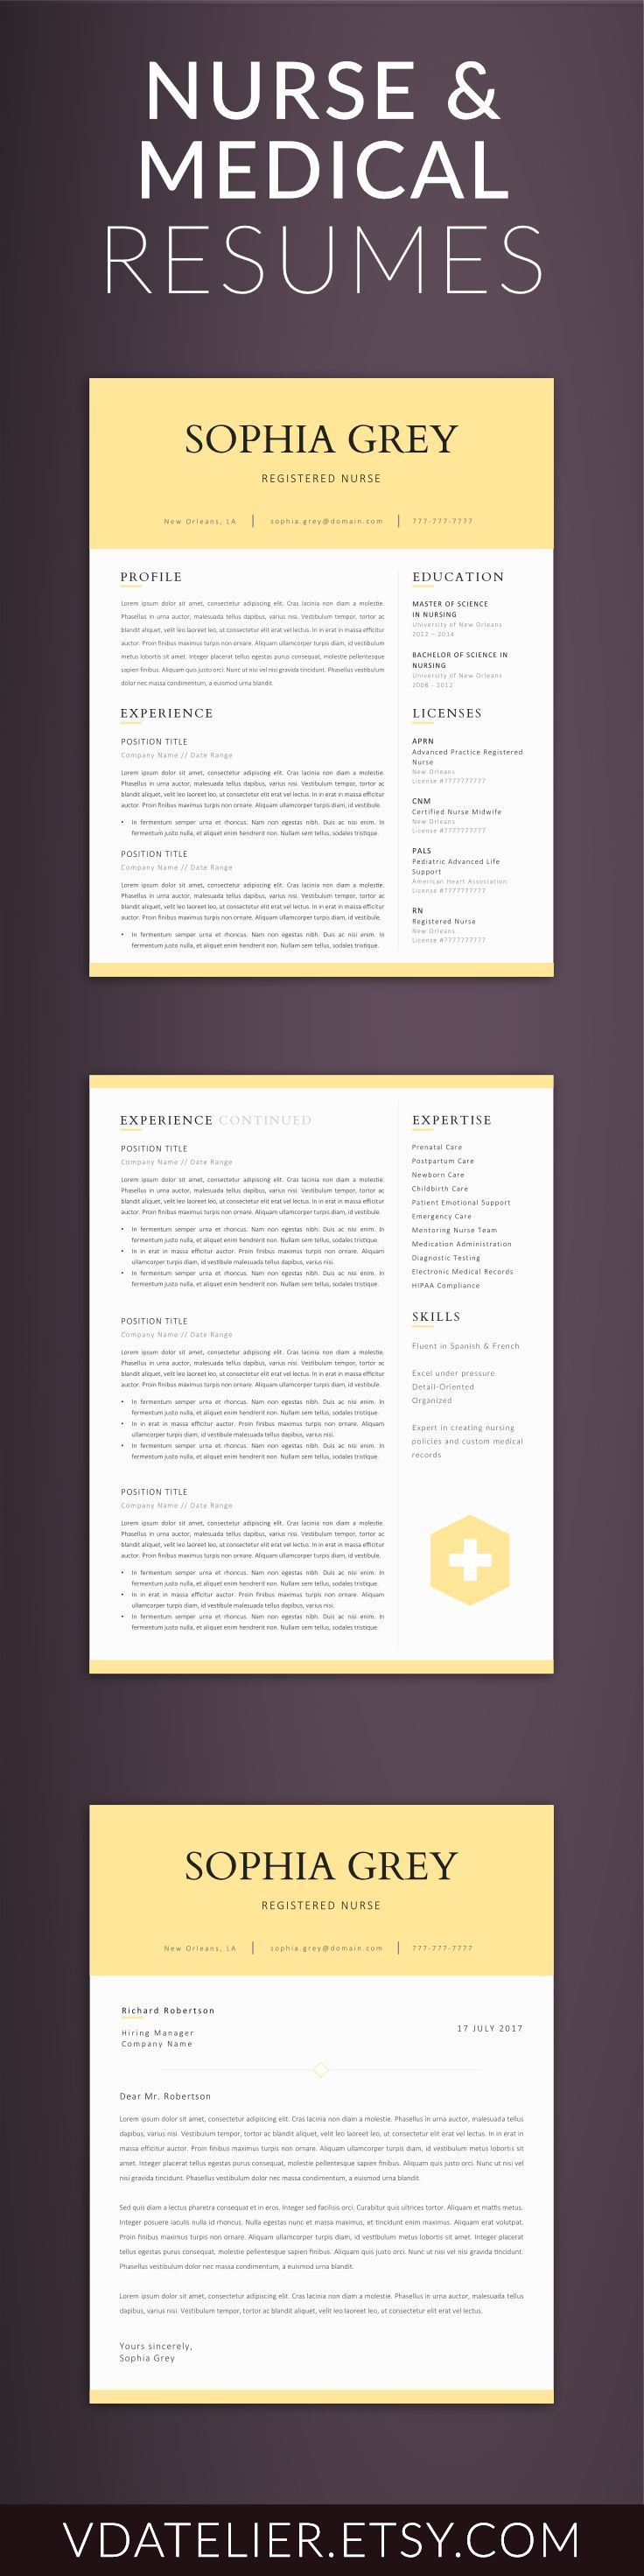 Doctor Resume Template for Word, Nurse Resume Template | Nurse CV ...